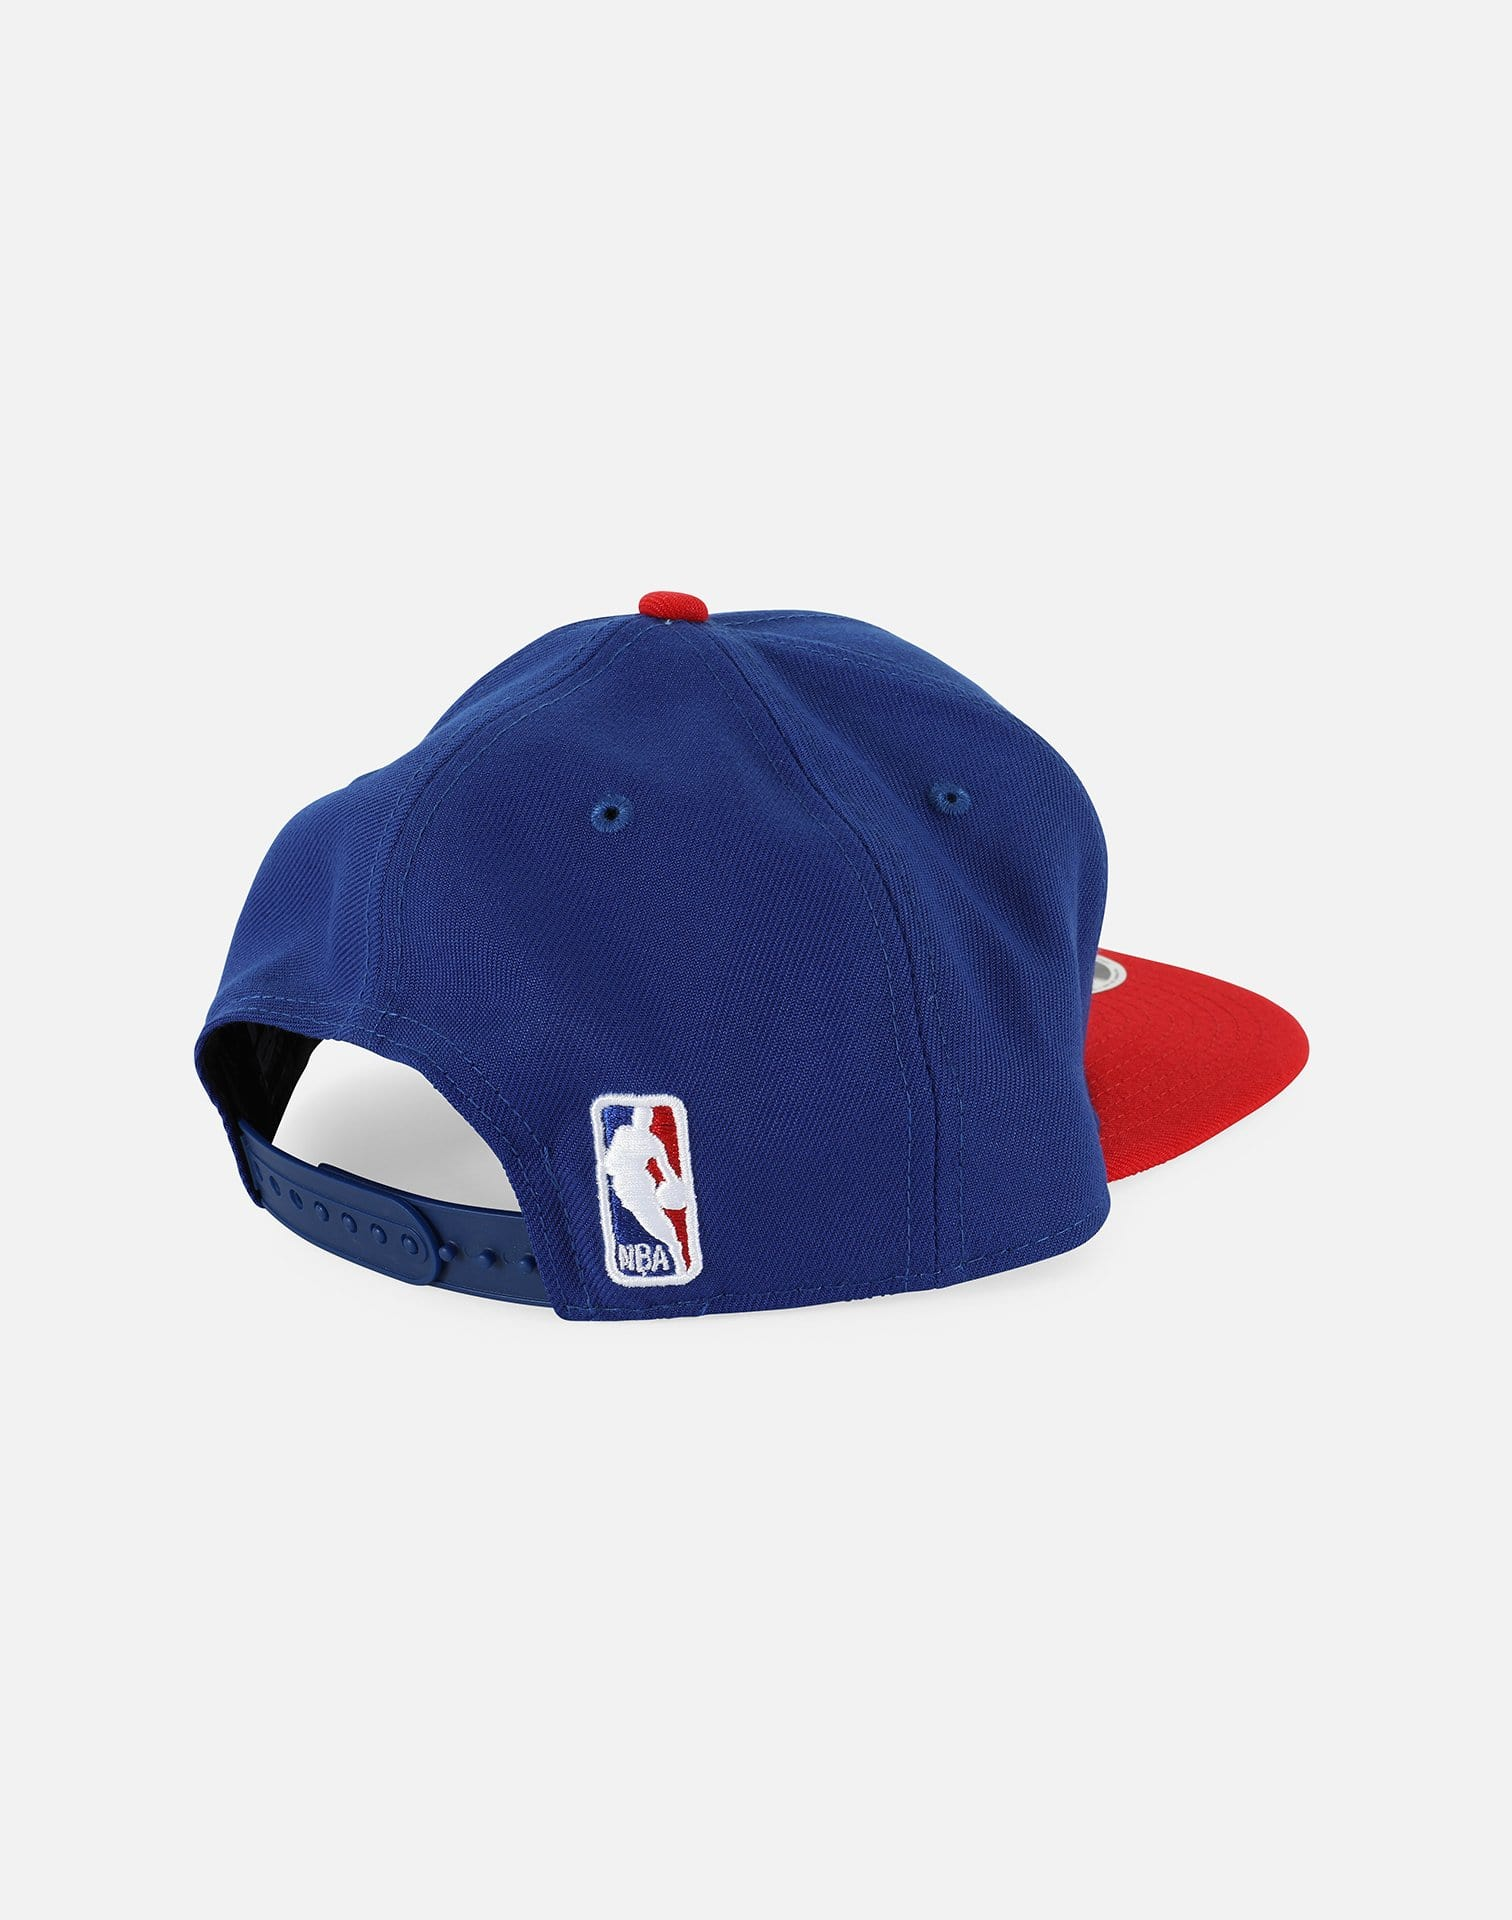 New Era NBA Philadelphia 76ers Snapback Hat